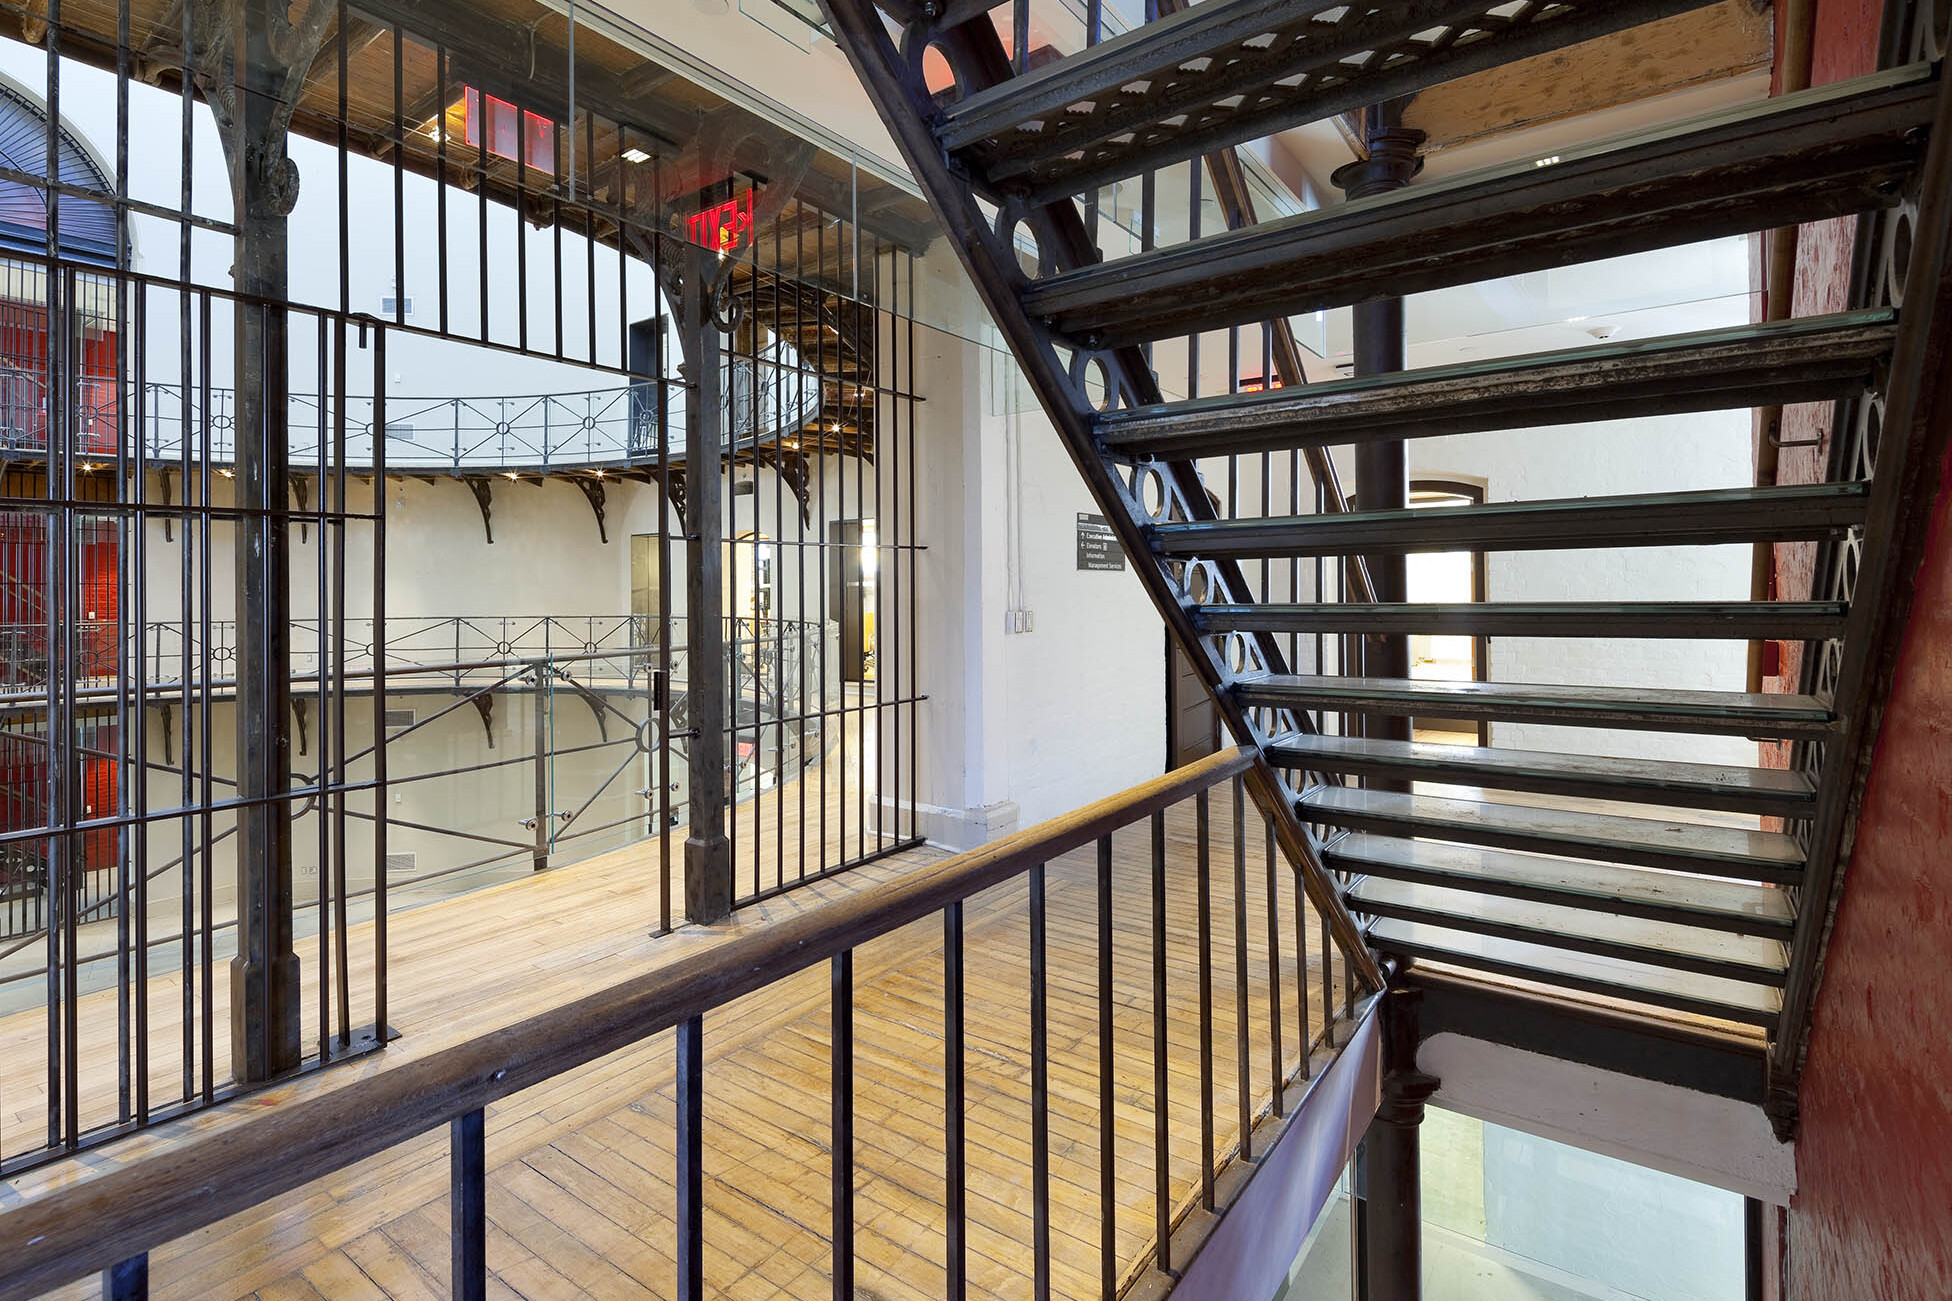 Open original copper staircase with railing connecting three floors